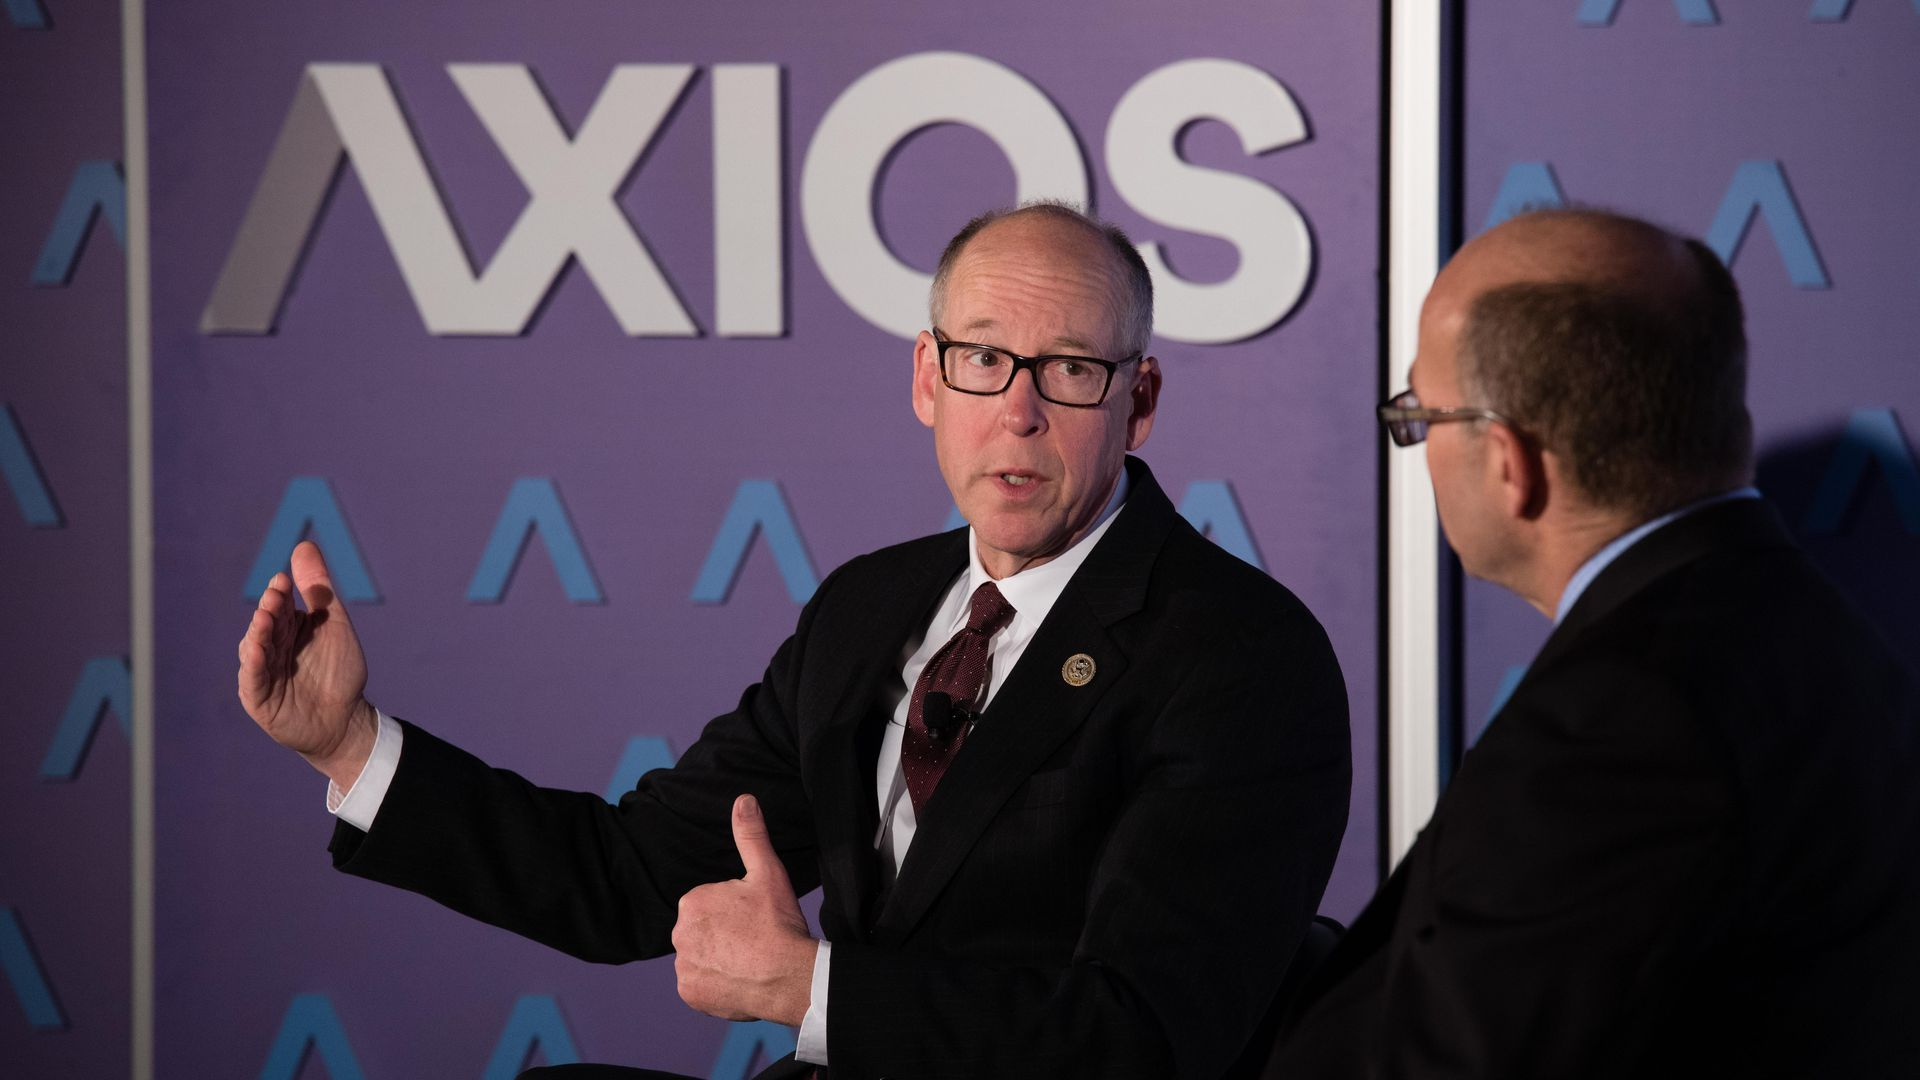 Rep. Greg Walden in front of an Axios logo